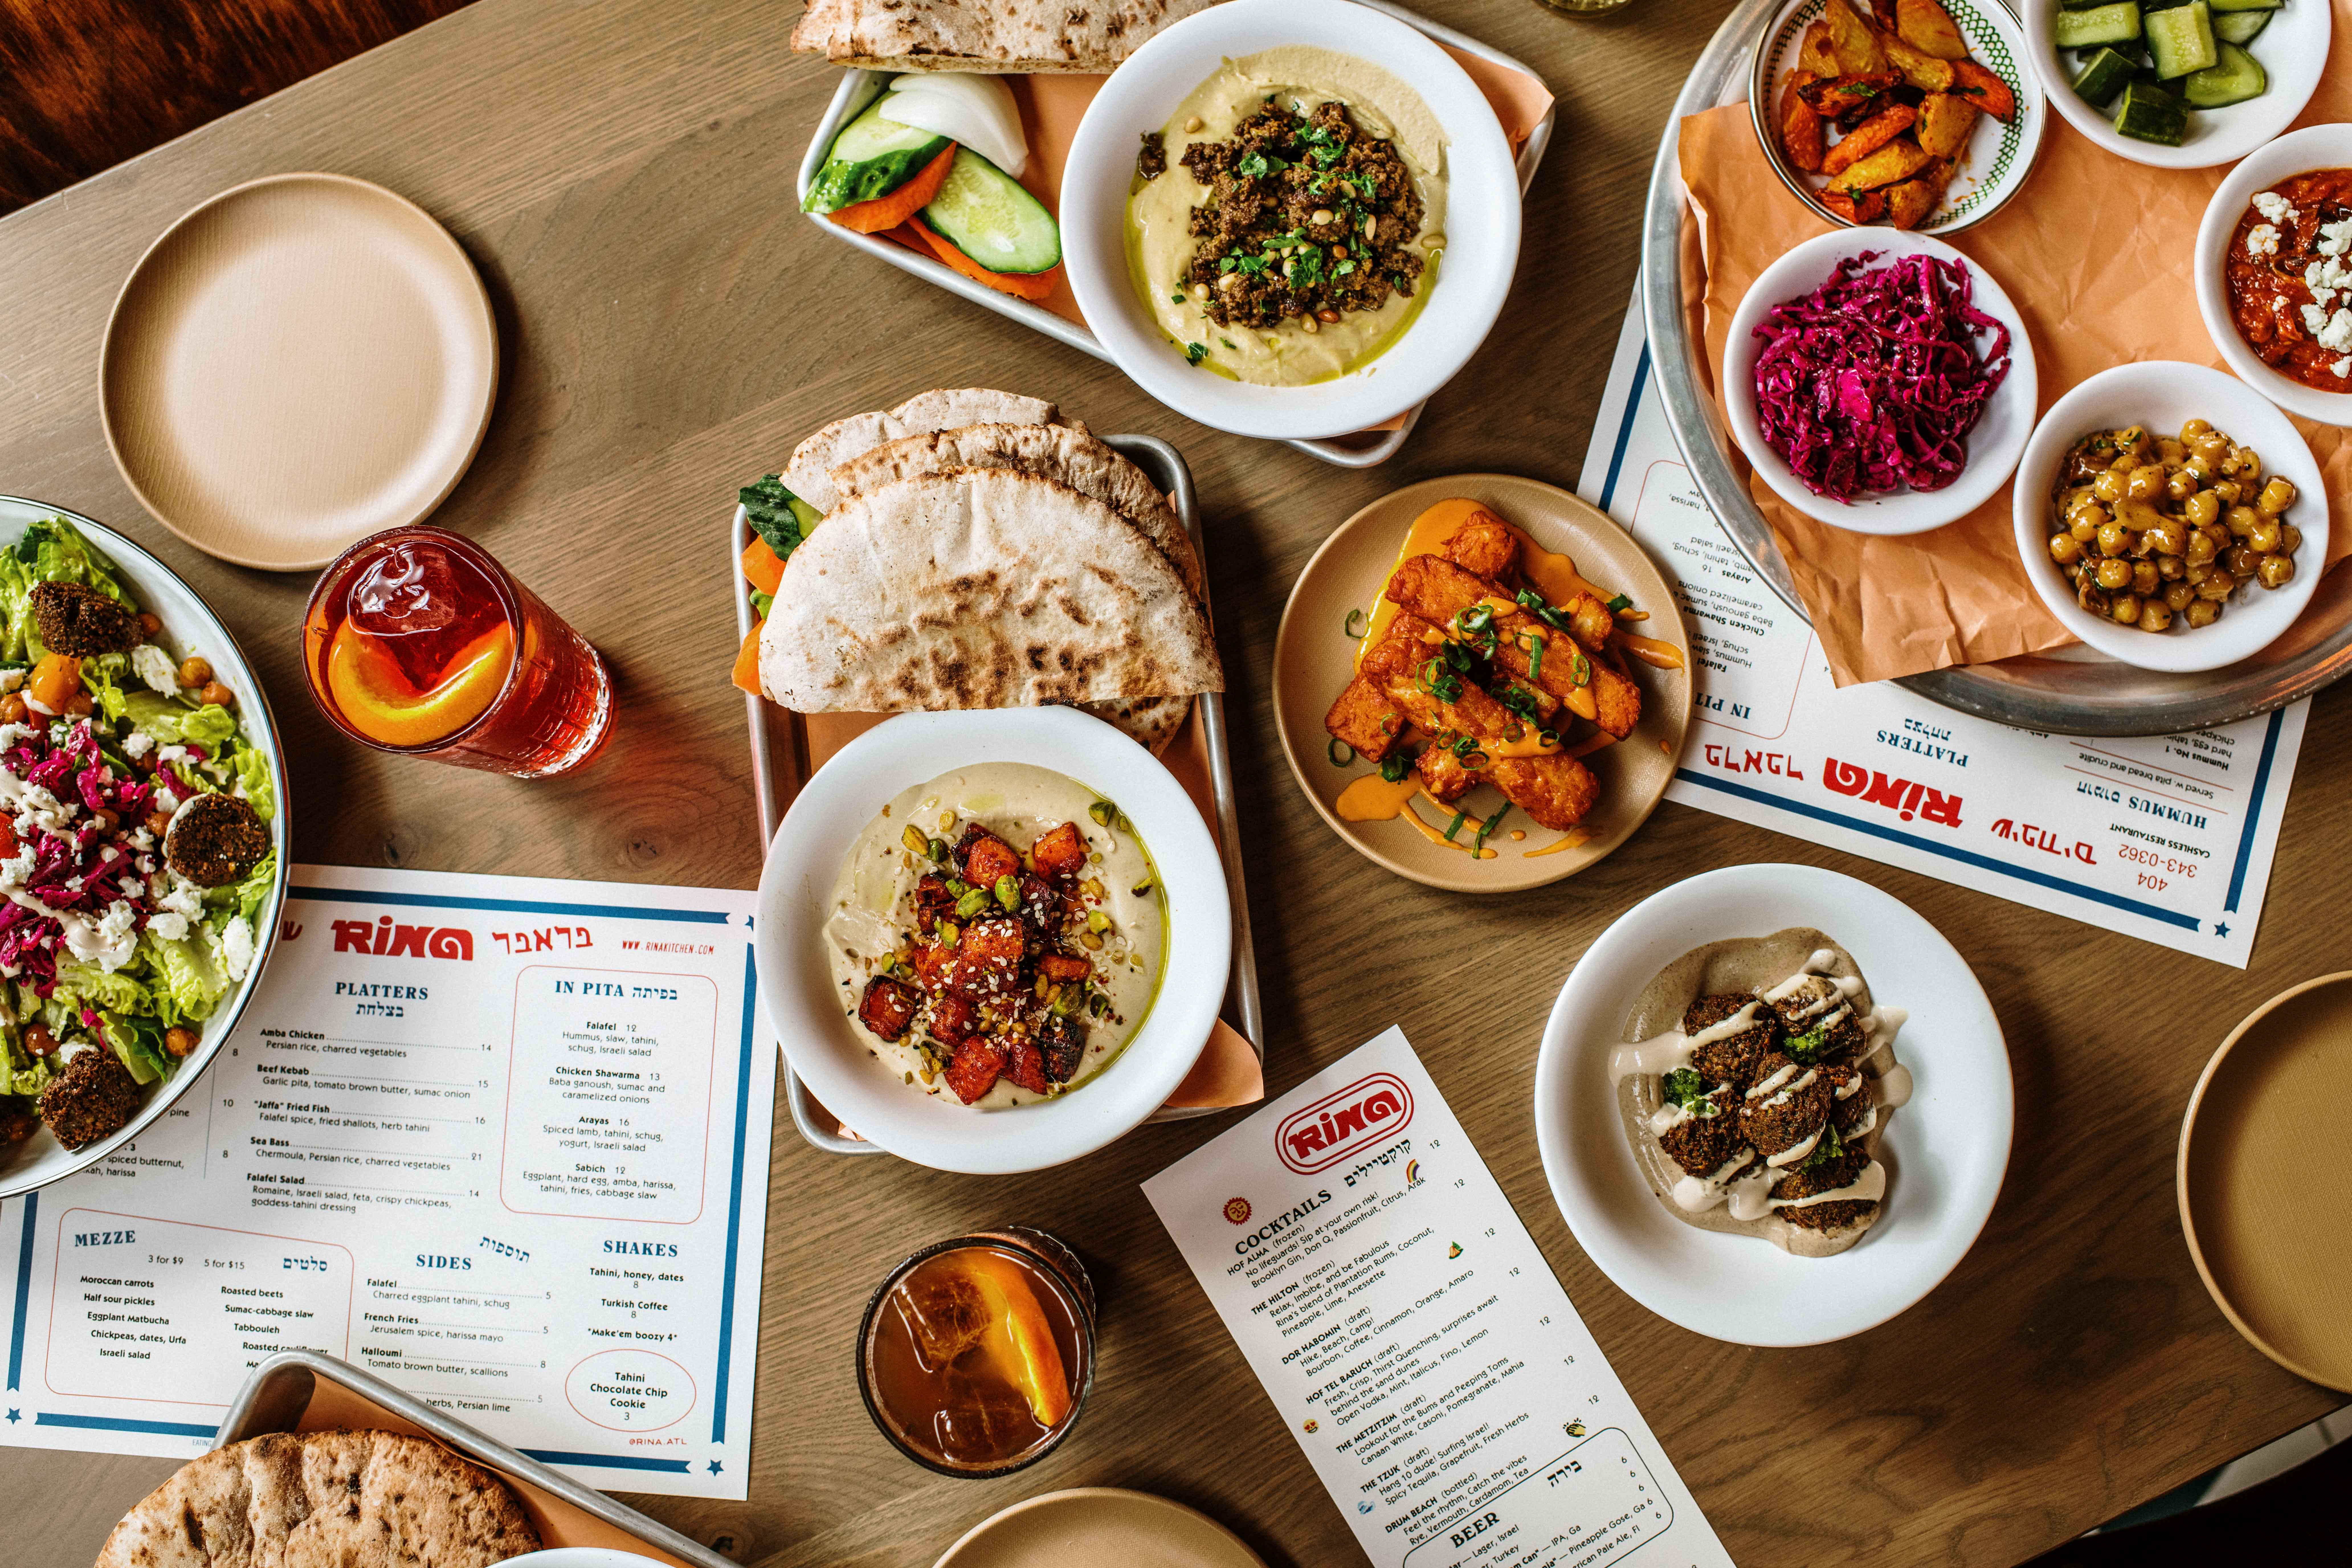 A large mezze and hummus spread on a table at Rina on the Beltline